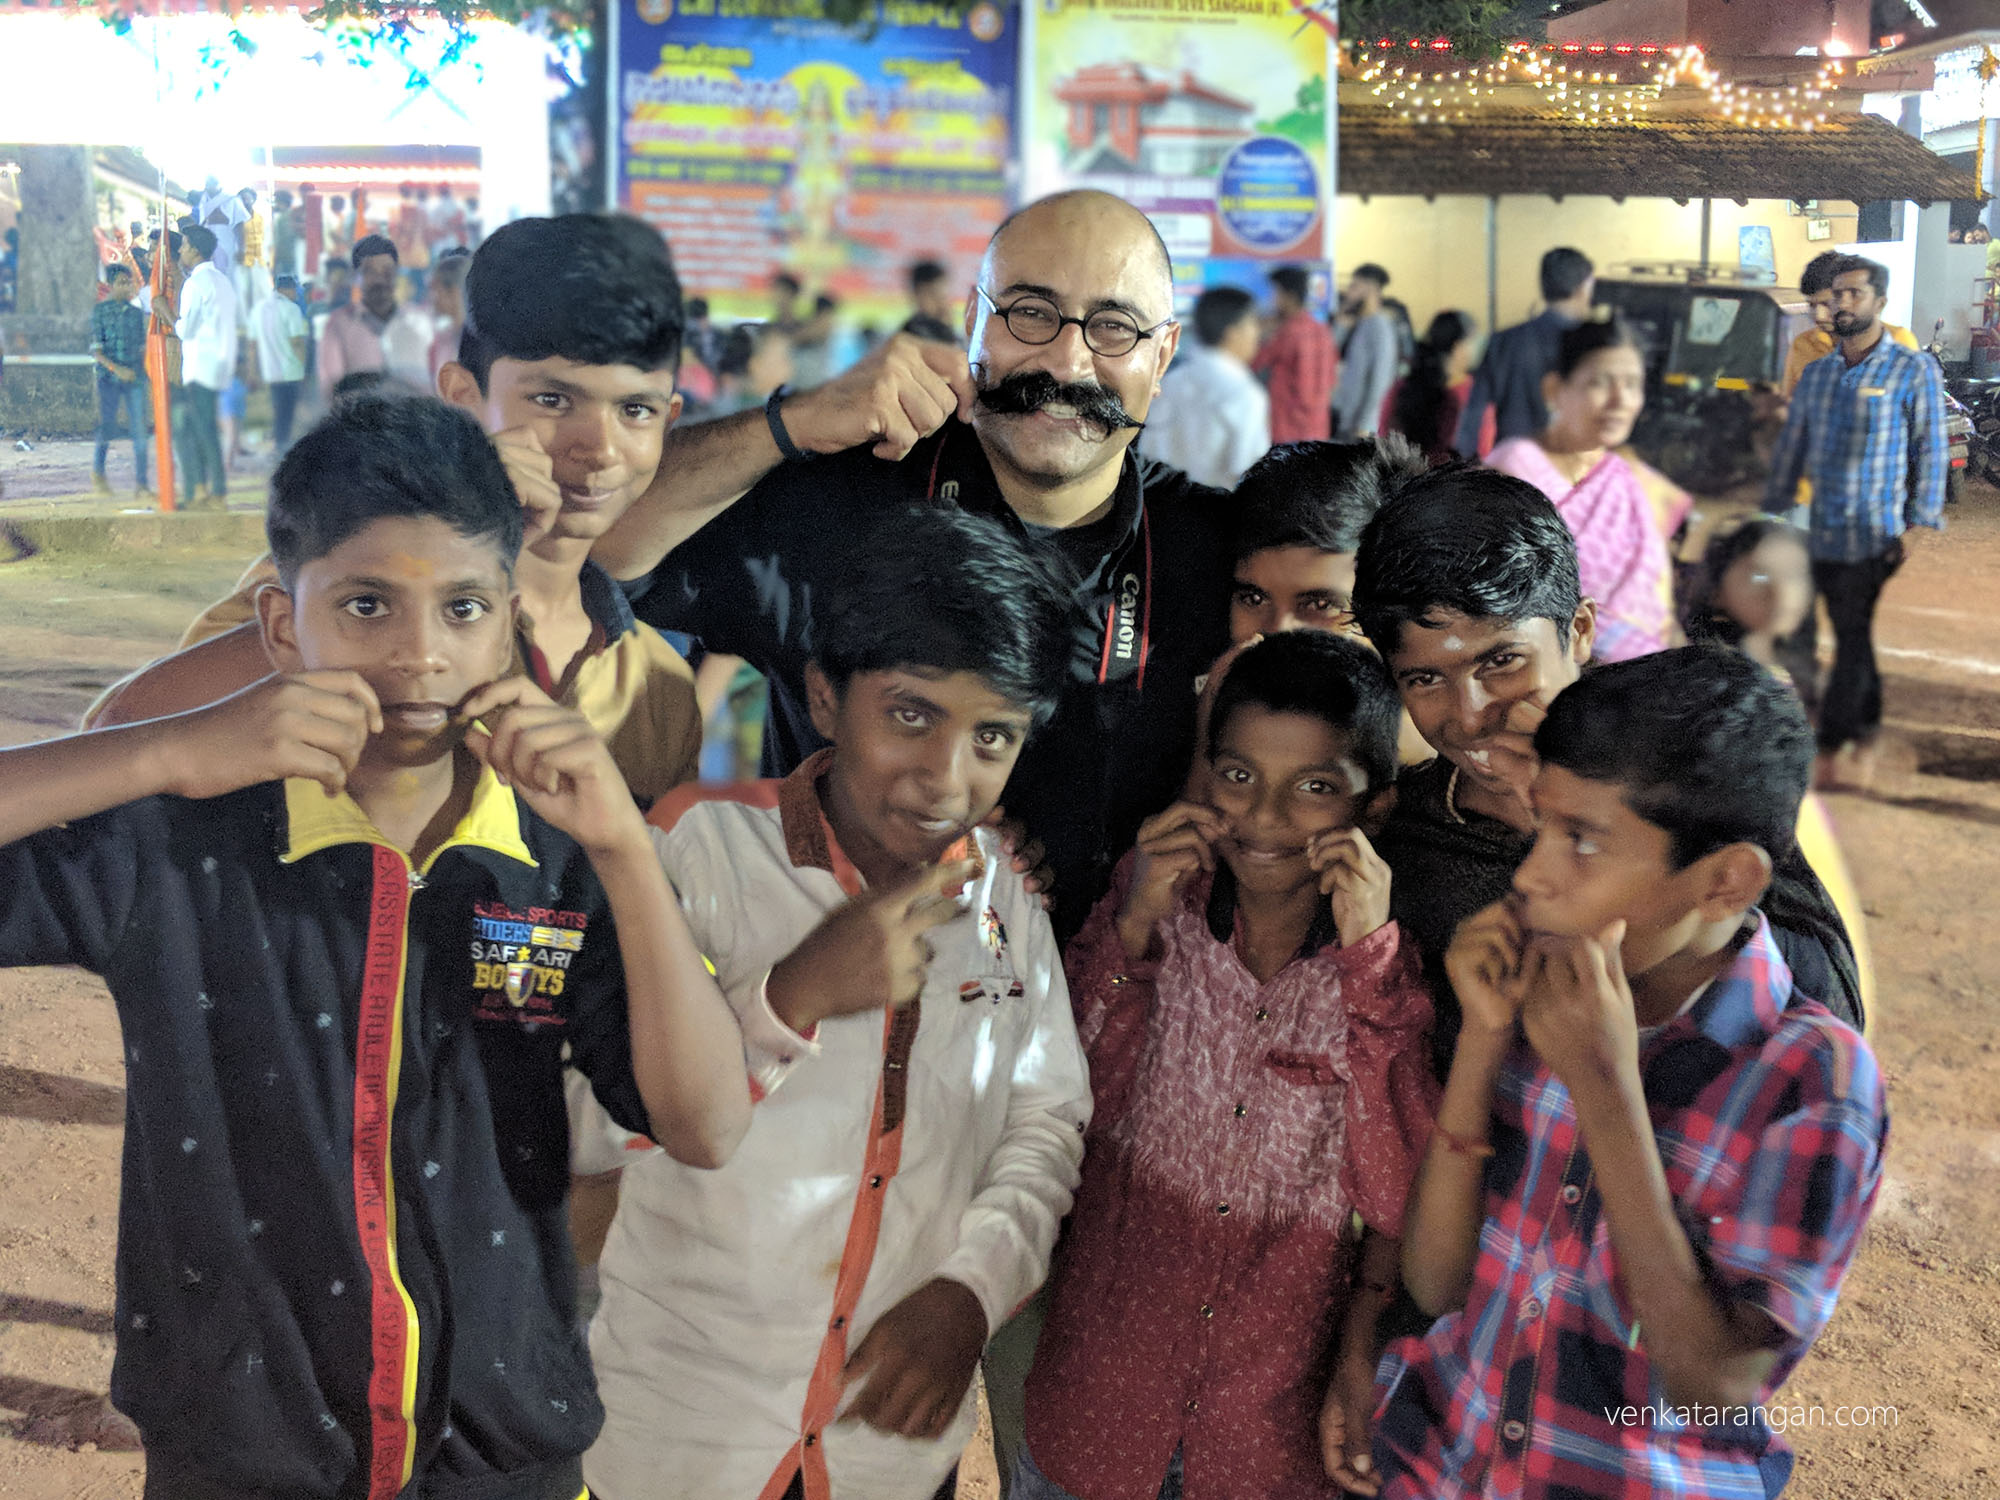 My friend Pravin Shekar showing off his moustache and attracting quite a lot of young admirers